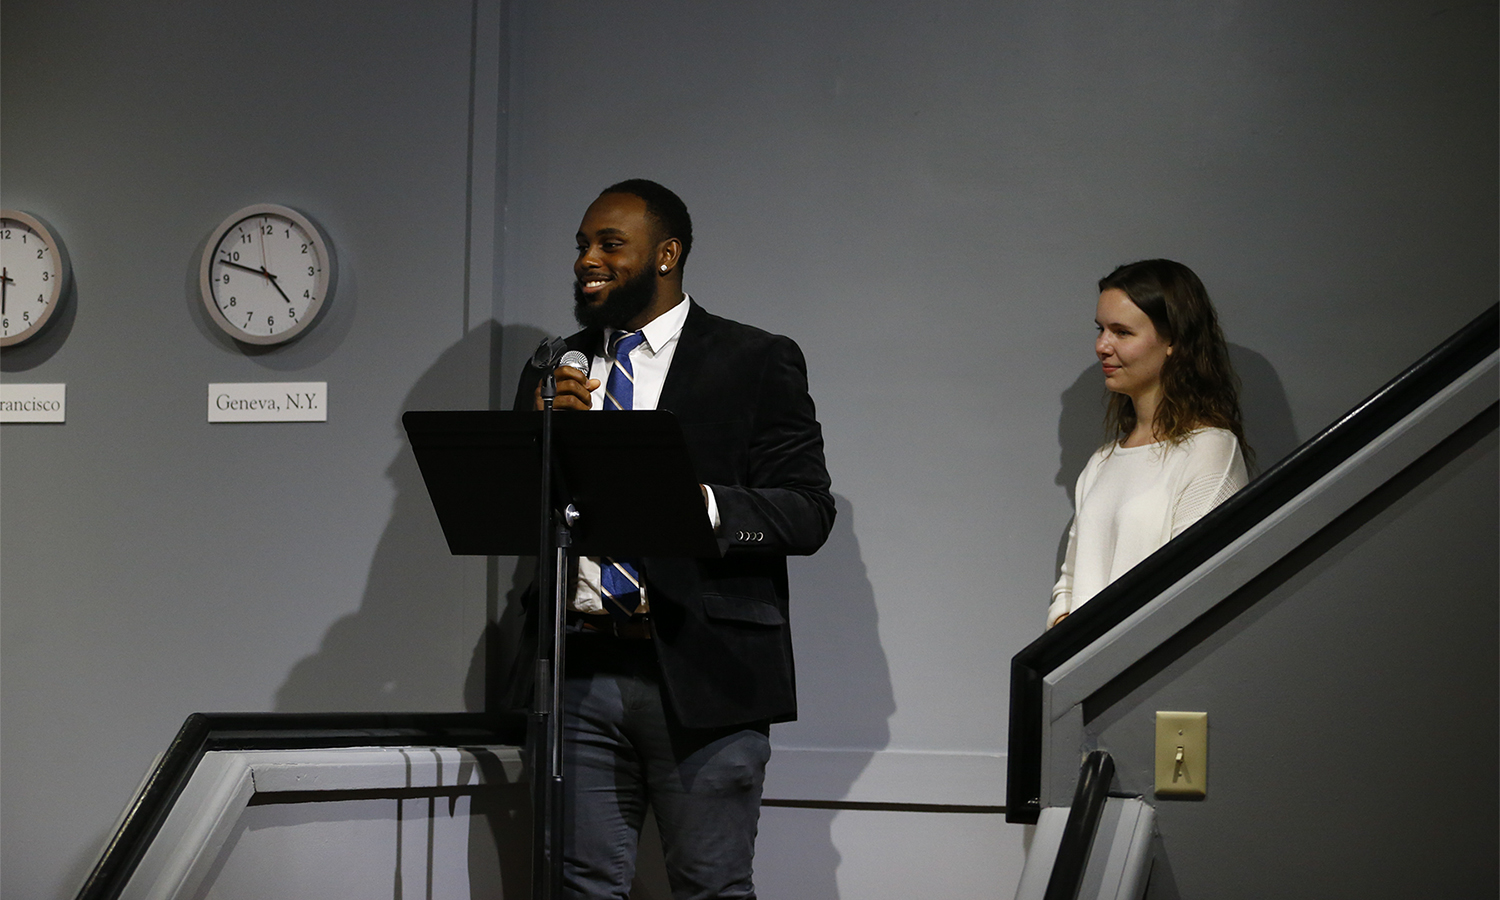 Al Smith '19 and Chloe Elmer '20 speak about their student expweriences during the reception for the Bozzuto Center for Entrepreneurship.